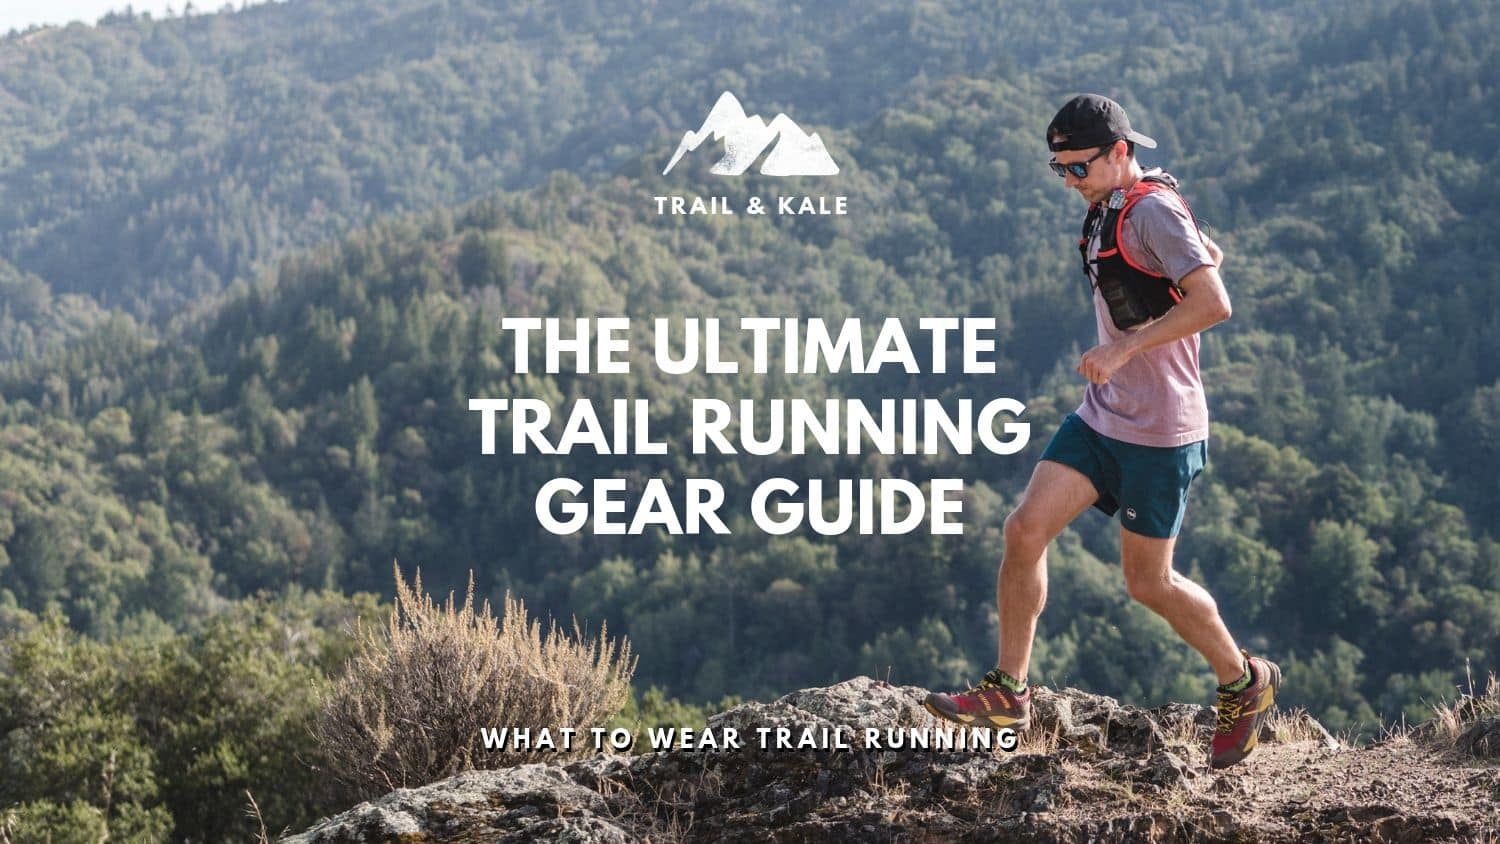 The Ultimate Trail Running Gear Guide: What To Wear Trail